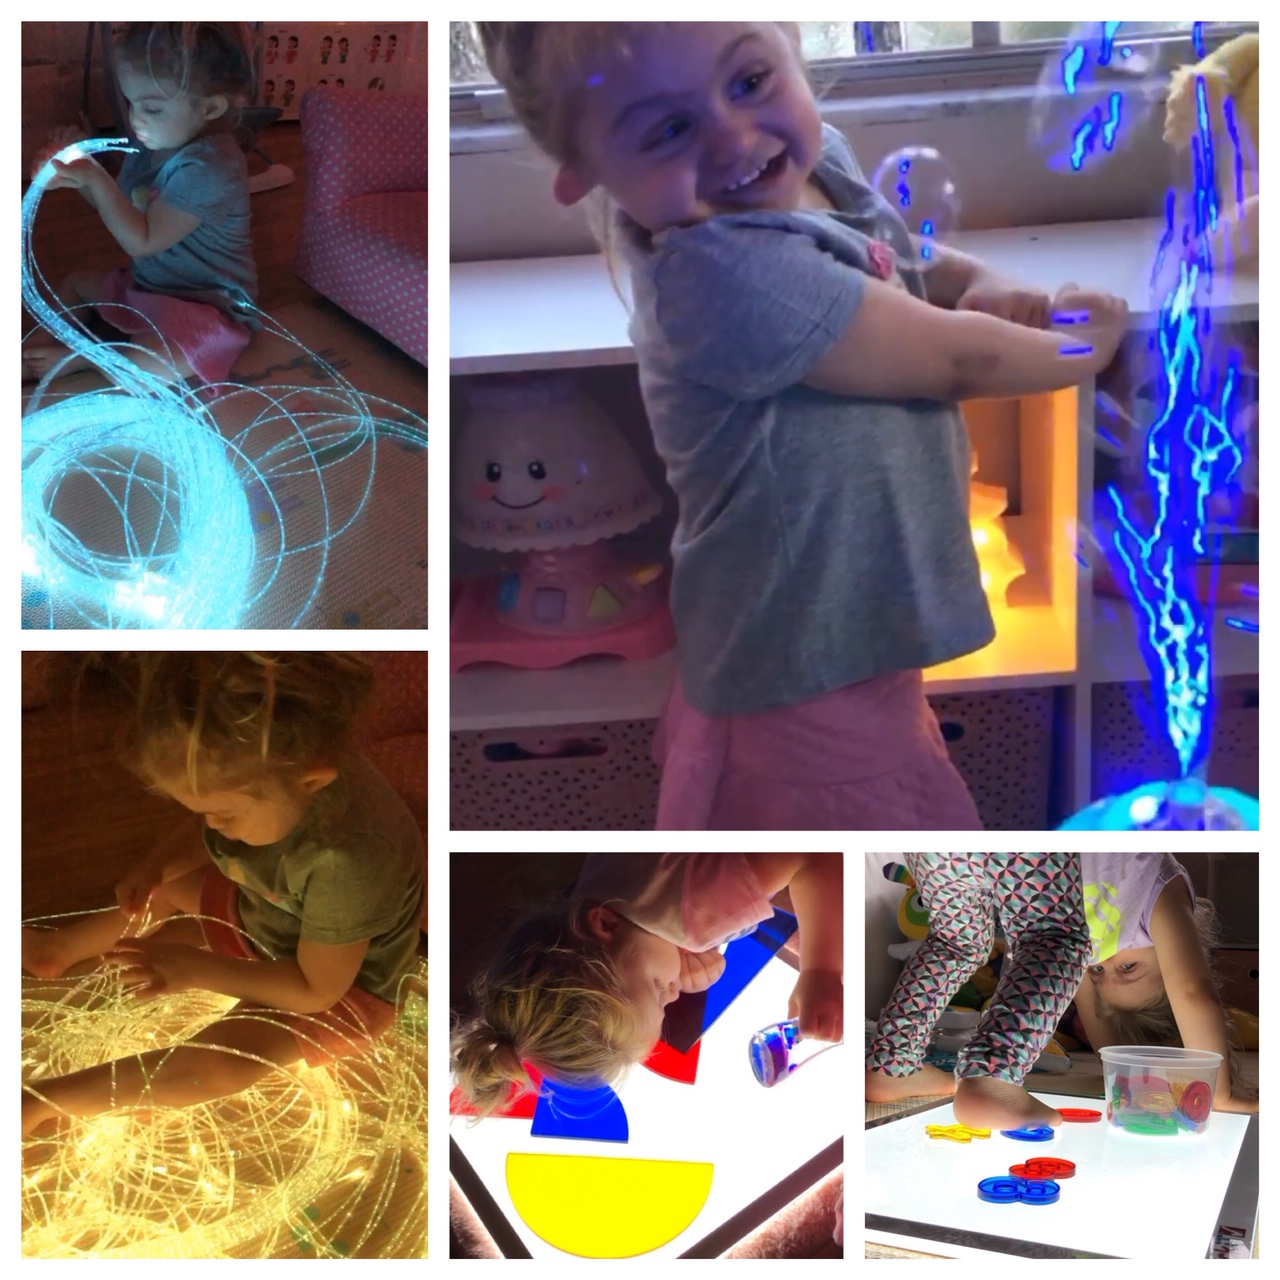 A girl plays with light strings and toys.